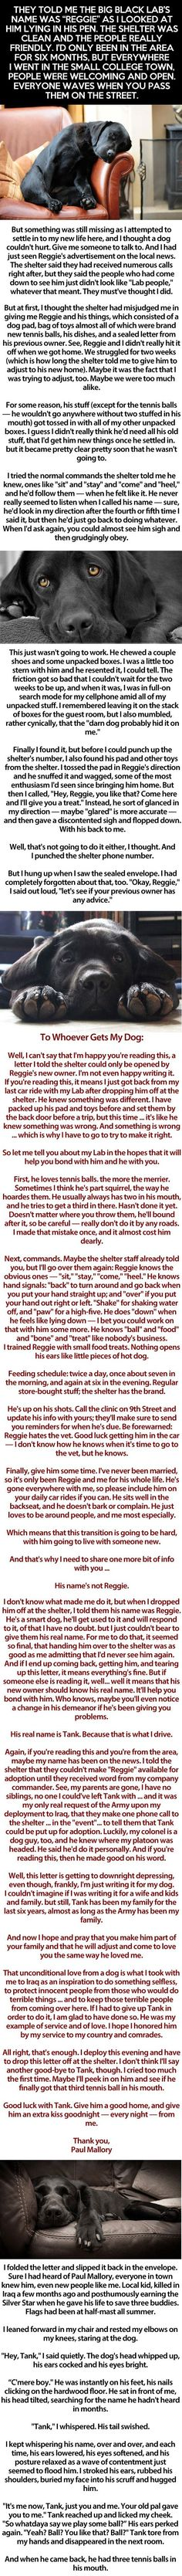 🙏PLEASE READ ME🙏 This Isn't A Typical Rescue Dog Story. The Ending Blew Me Away. A Must Read cute animals dogs adorable dog story puppy animal pets stories heart warming I Love Dogs, Puppy Love, No Bad Days, Faith In Humanity, Look At You, Rescue Dogs, Make Me Smile, In This World, Just In Case